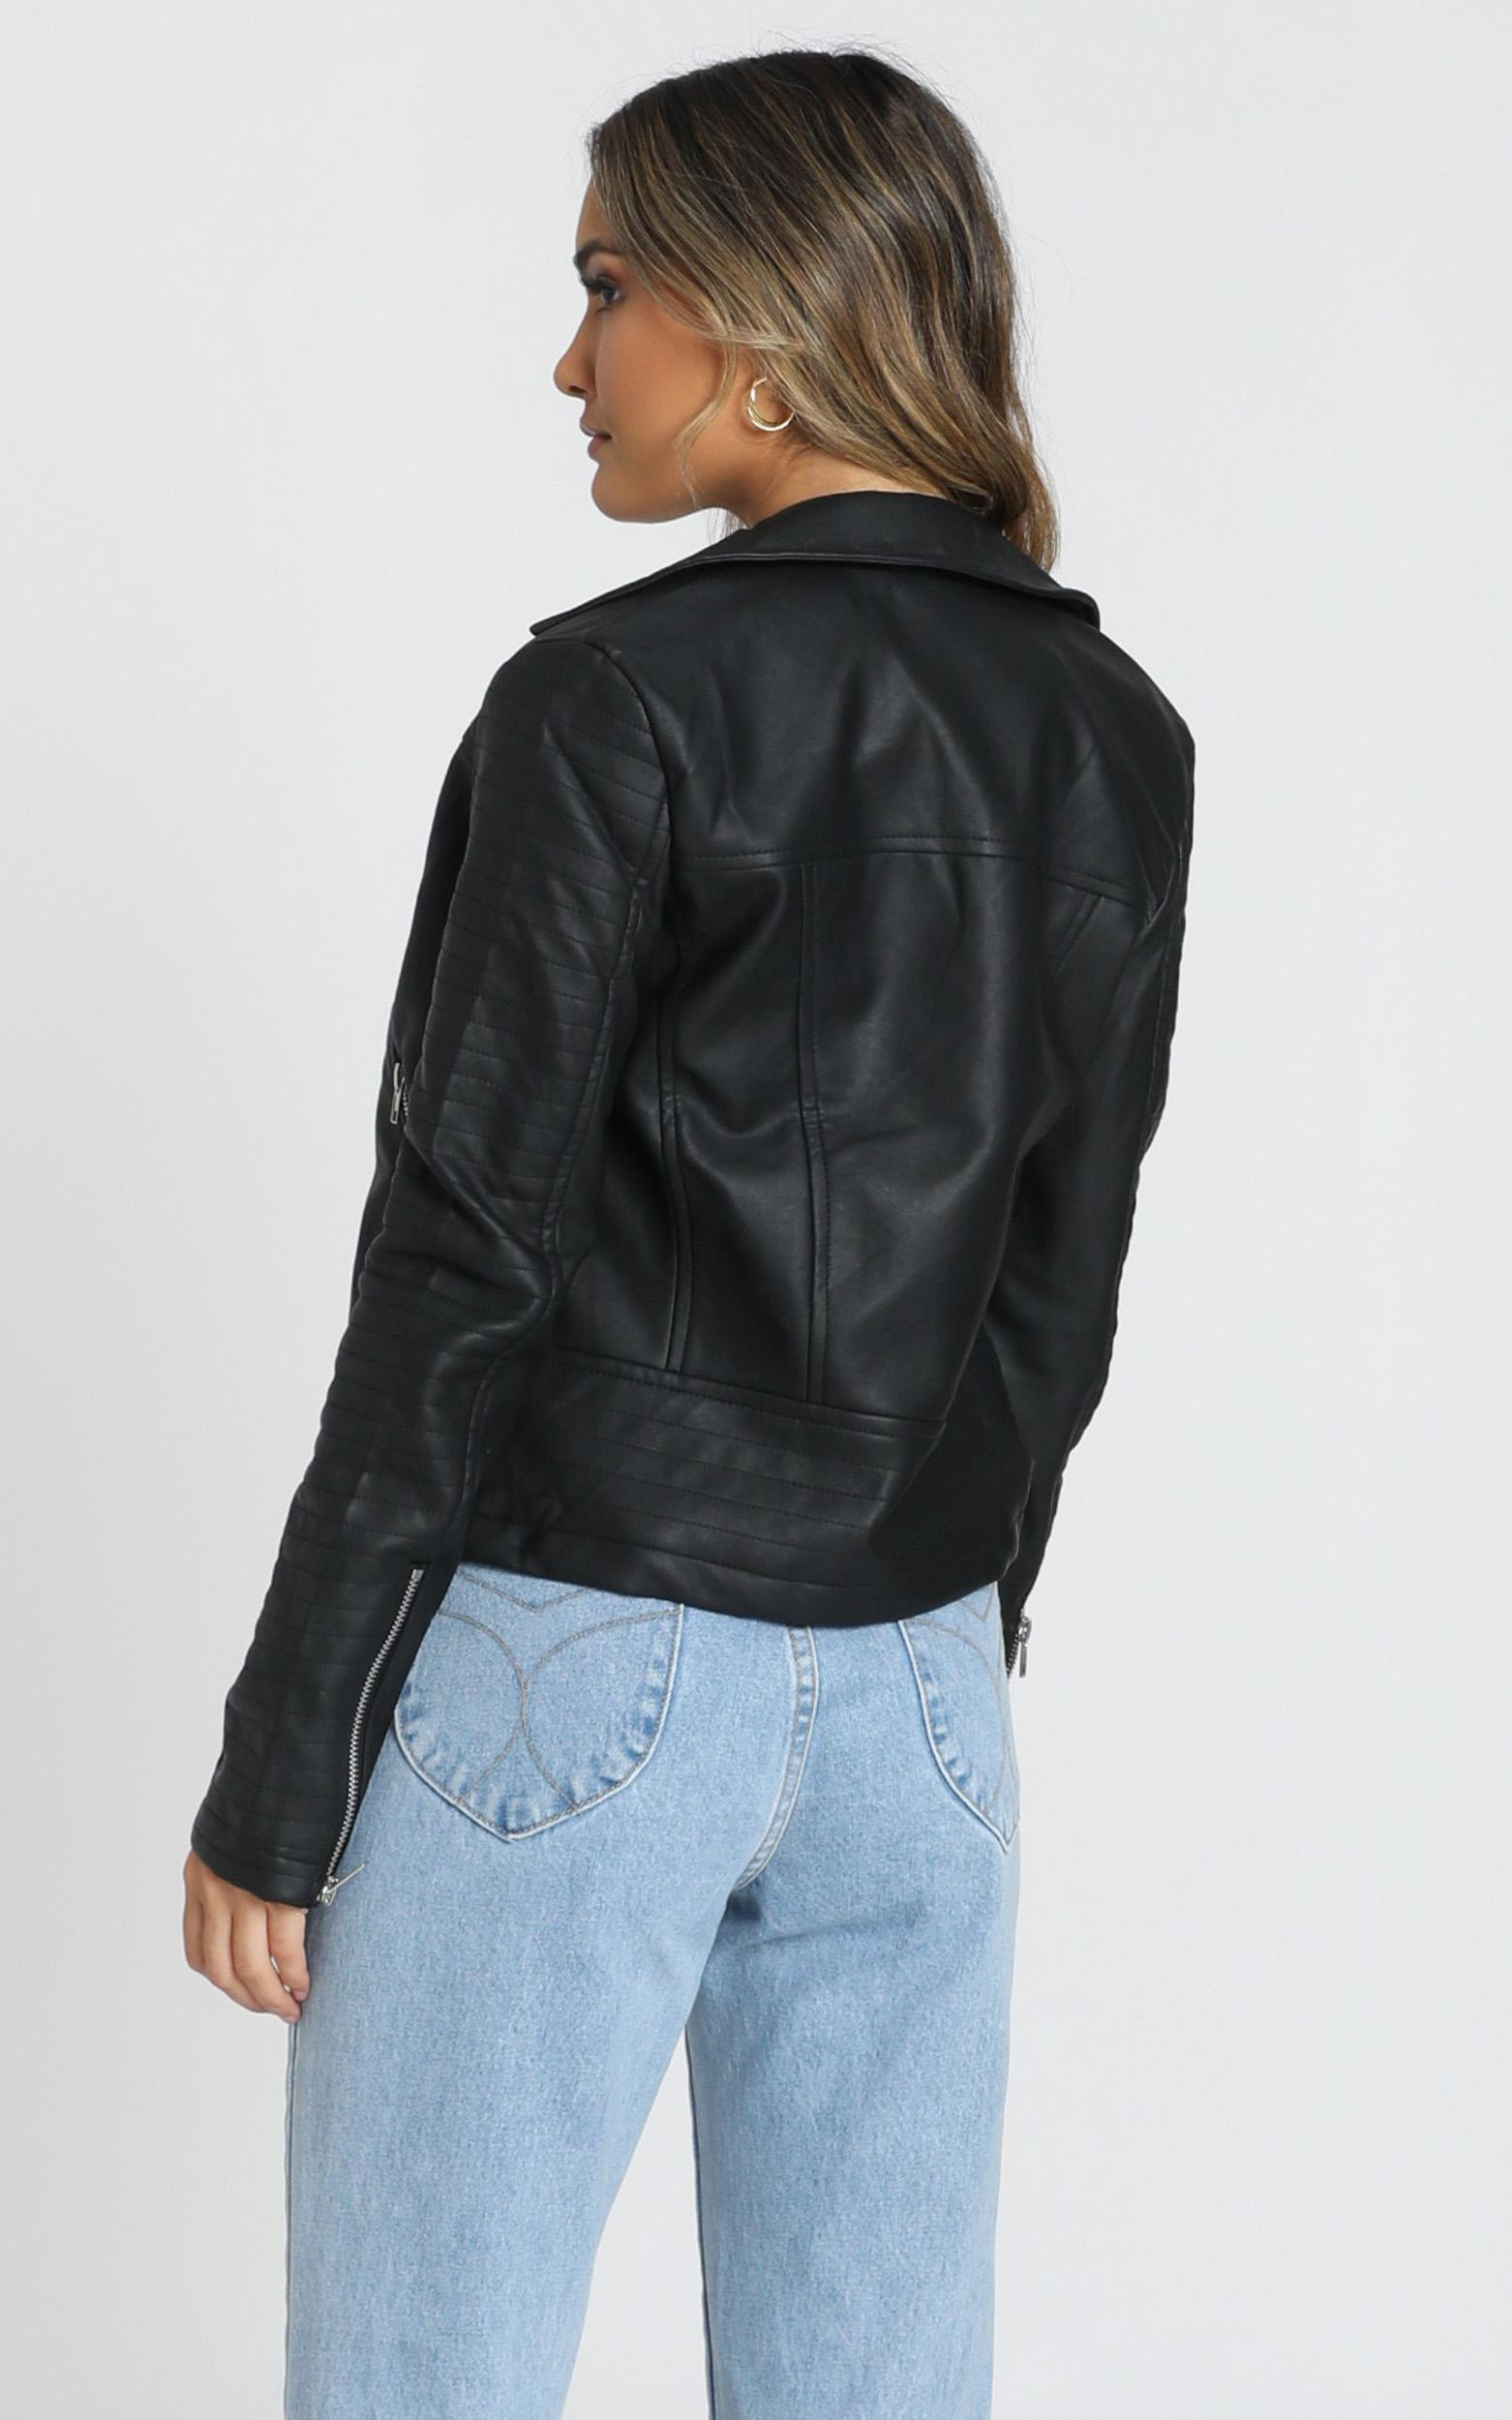 Same Language Jacket In Black Leatherette - 16 (XXL), Black, hi-res image number null